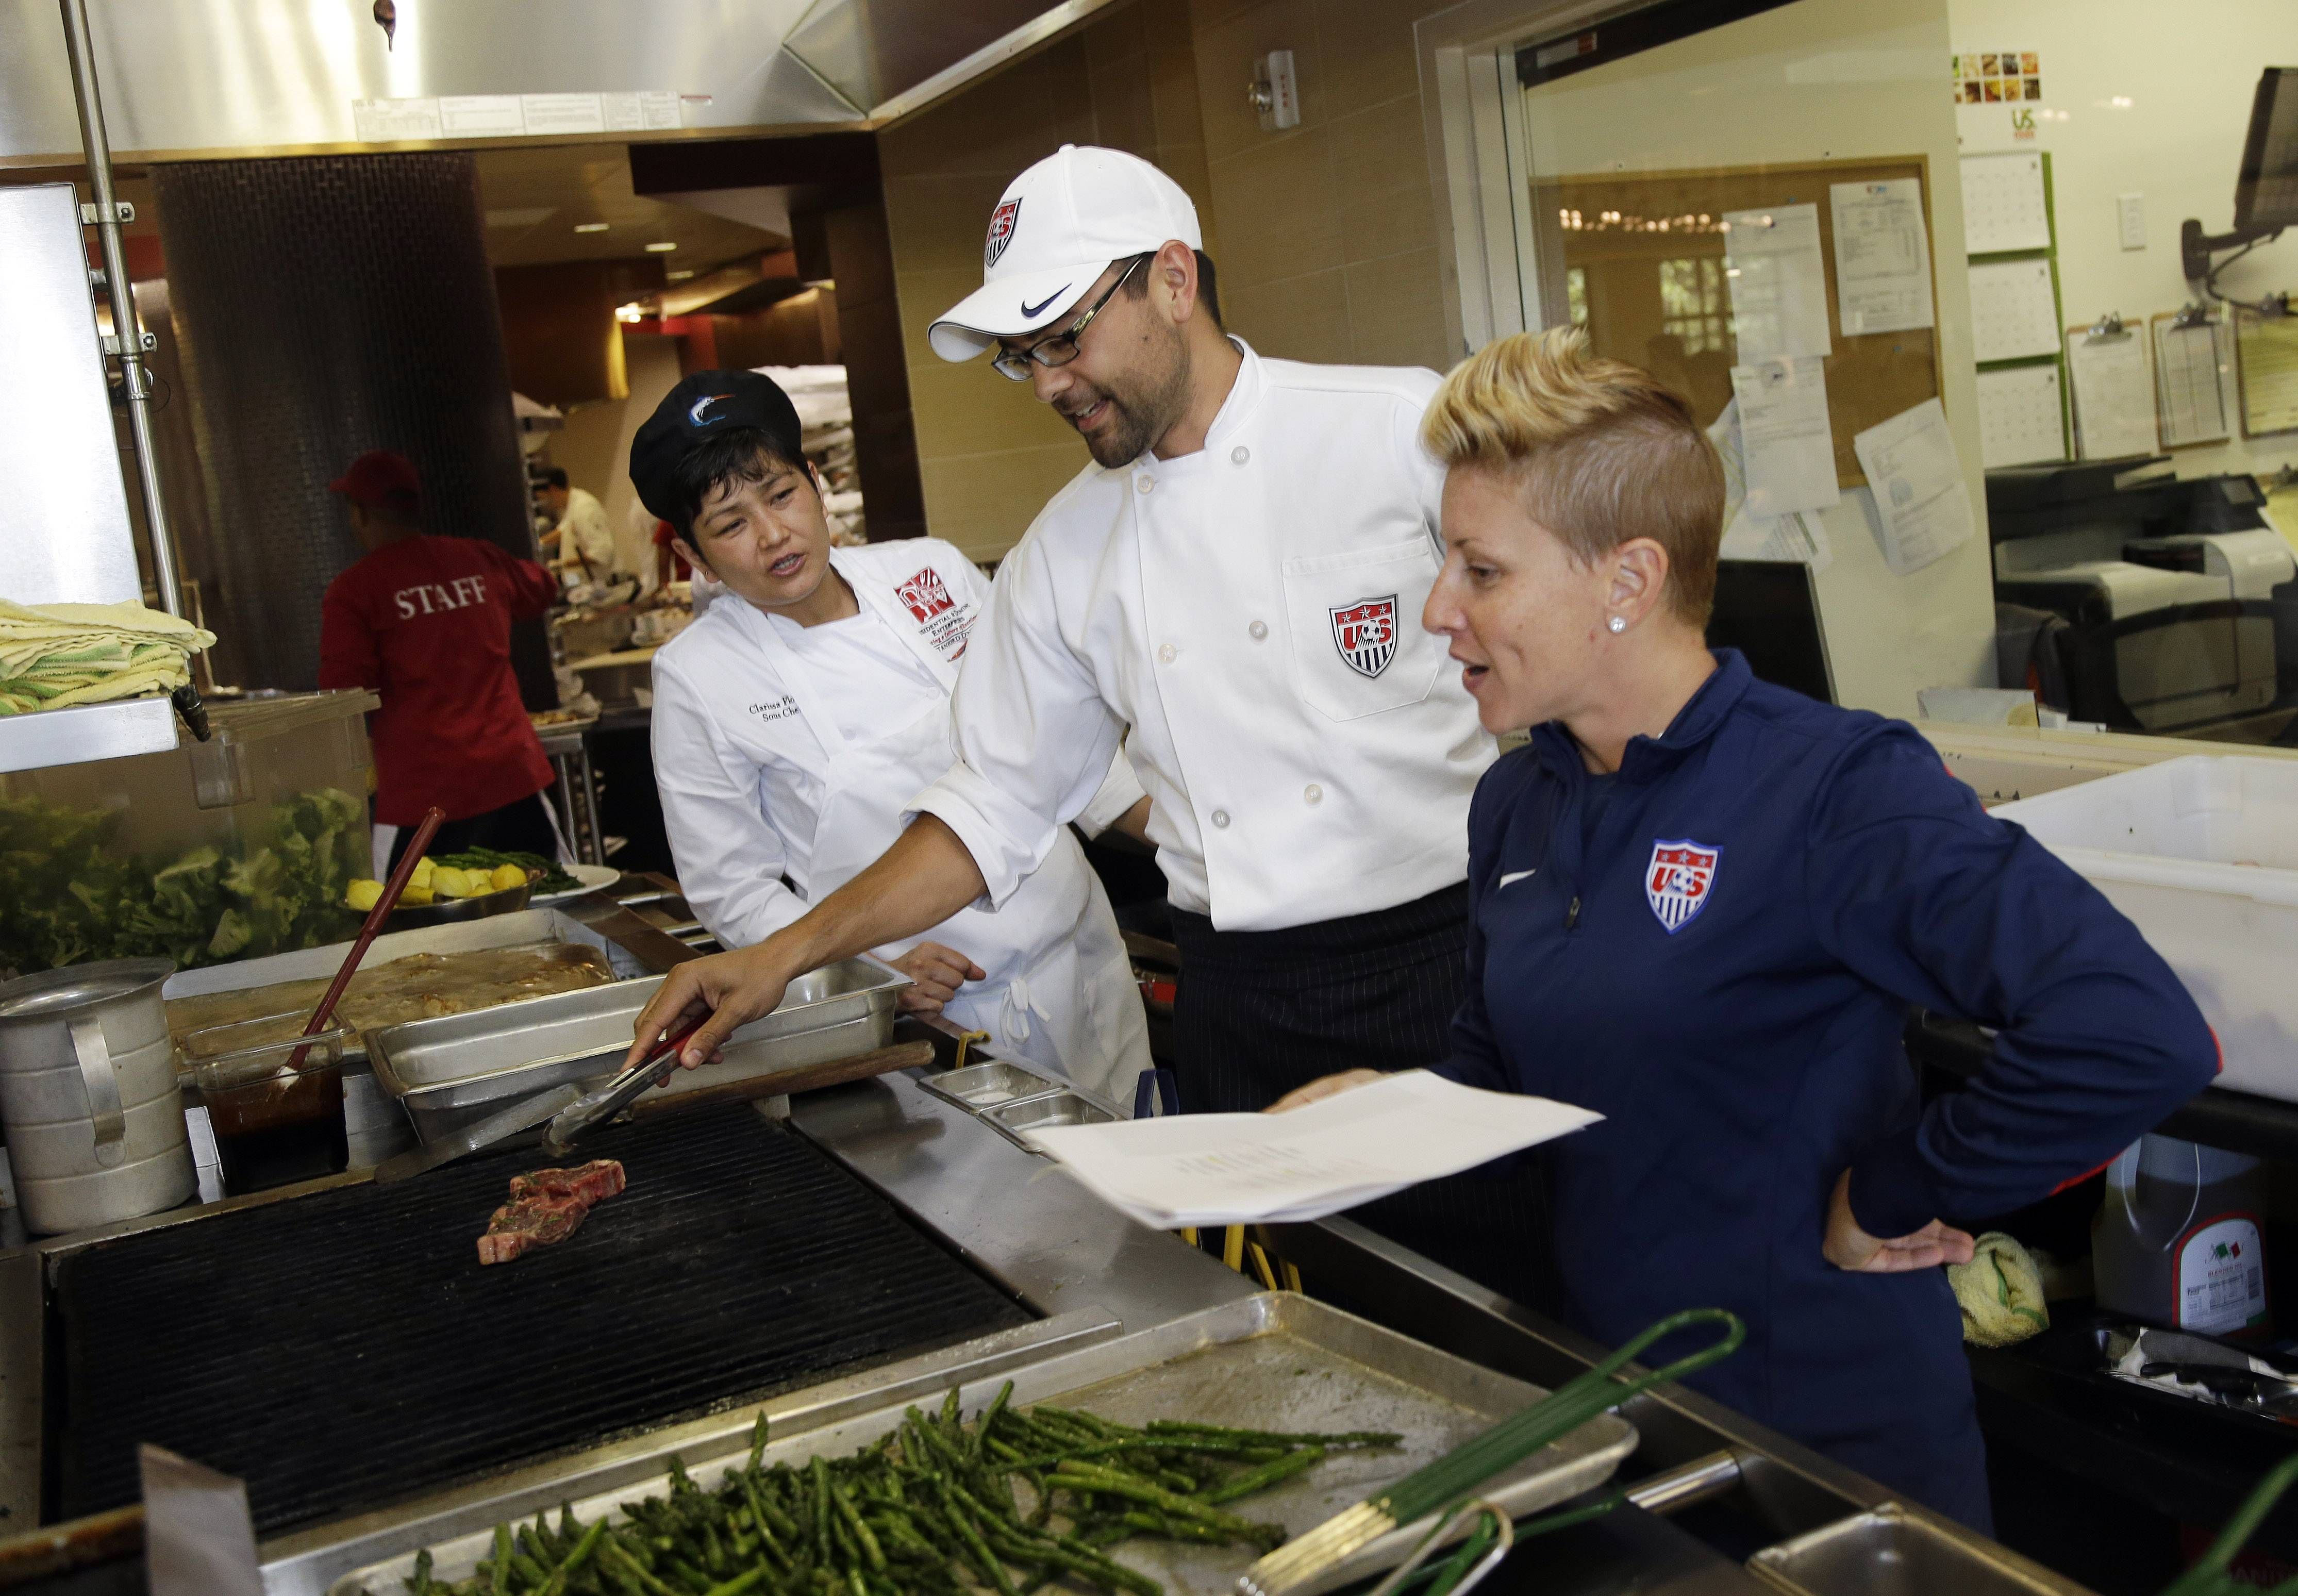 U.S. soccer dietitian Danielle LaFata, right, goes over the lunch menu with the team's chef Bryson Billapando, center, and Stanford chef Clarissa Flores during the team's training in Stanford, Calif., in preparation for the World Cup soccer tournament in Brazil.